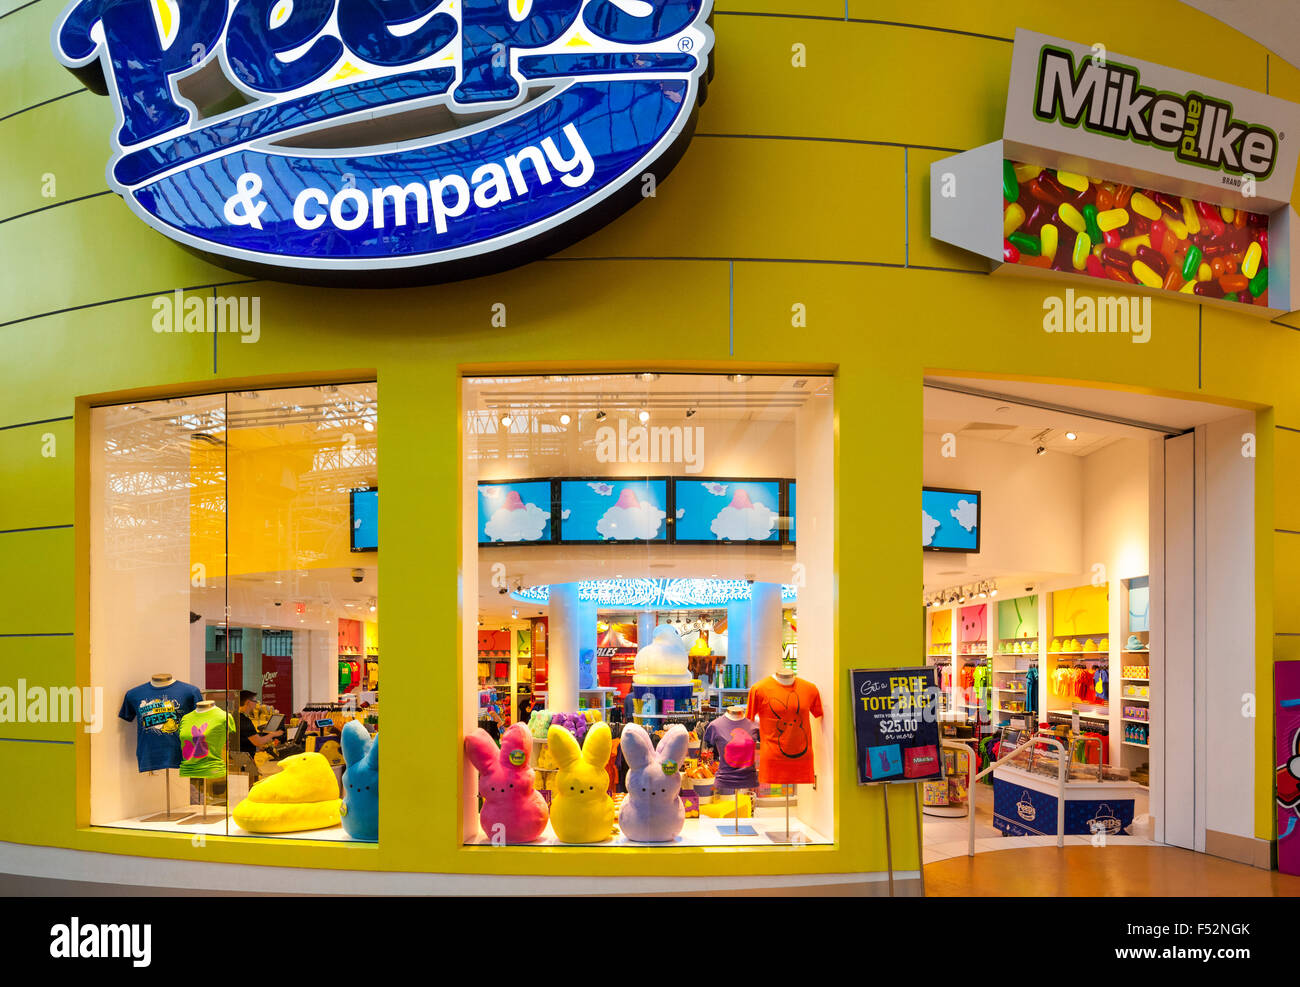 Peeps Candy Store inside the Mall of America Minneapolis. Peeps & Company shop selling merchandise and sweets. - Stock Image